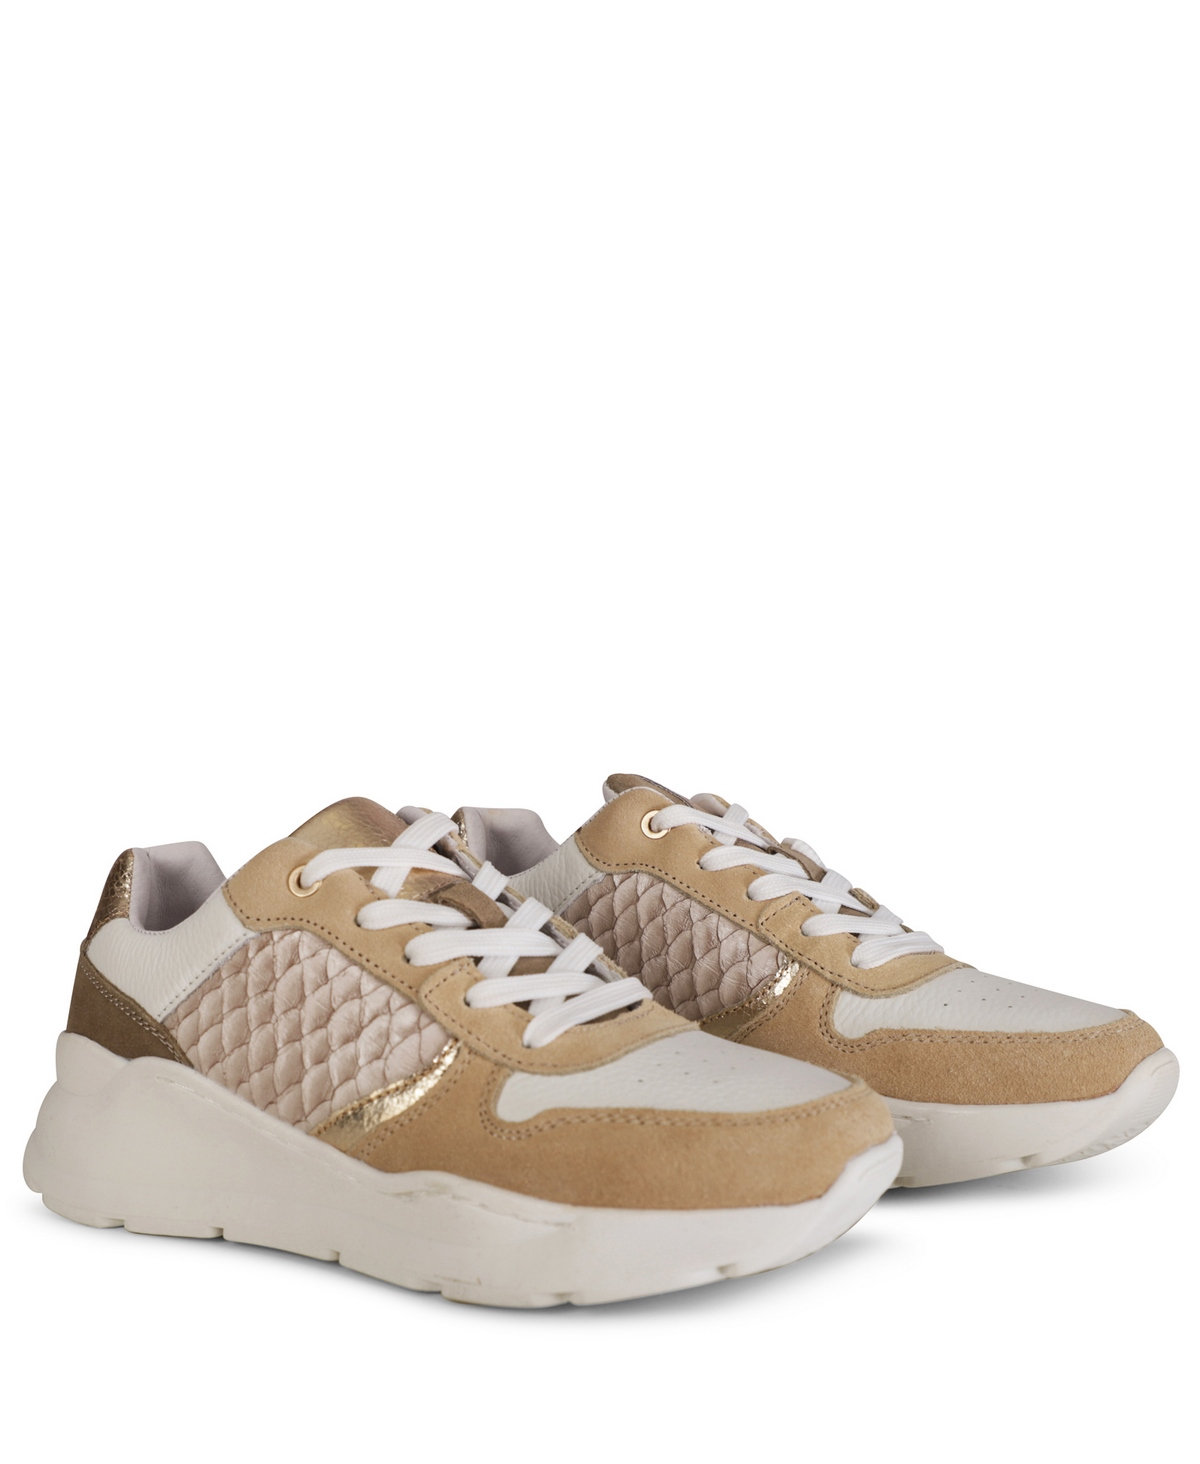 Shoecolate Sneaker Beige 8.10.06.031